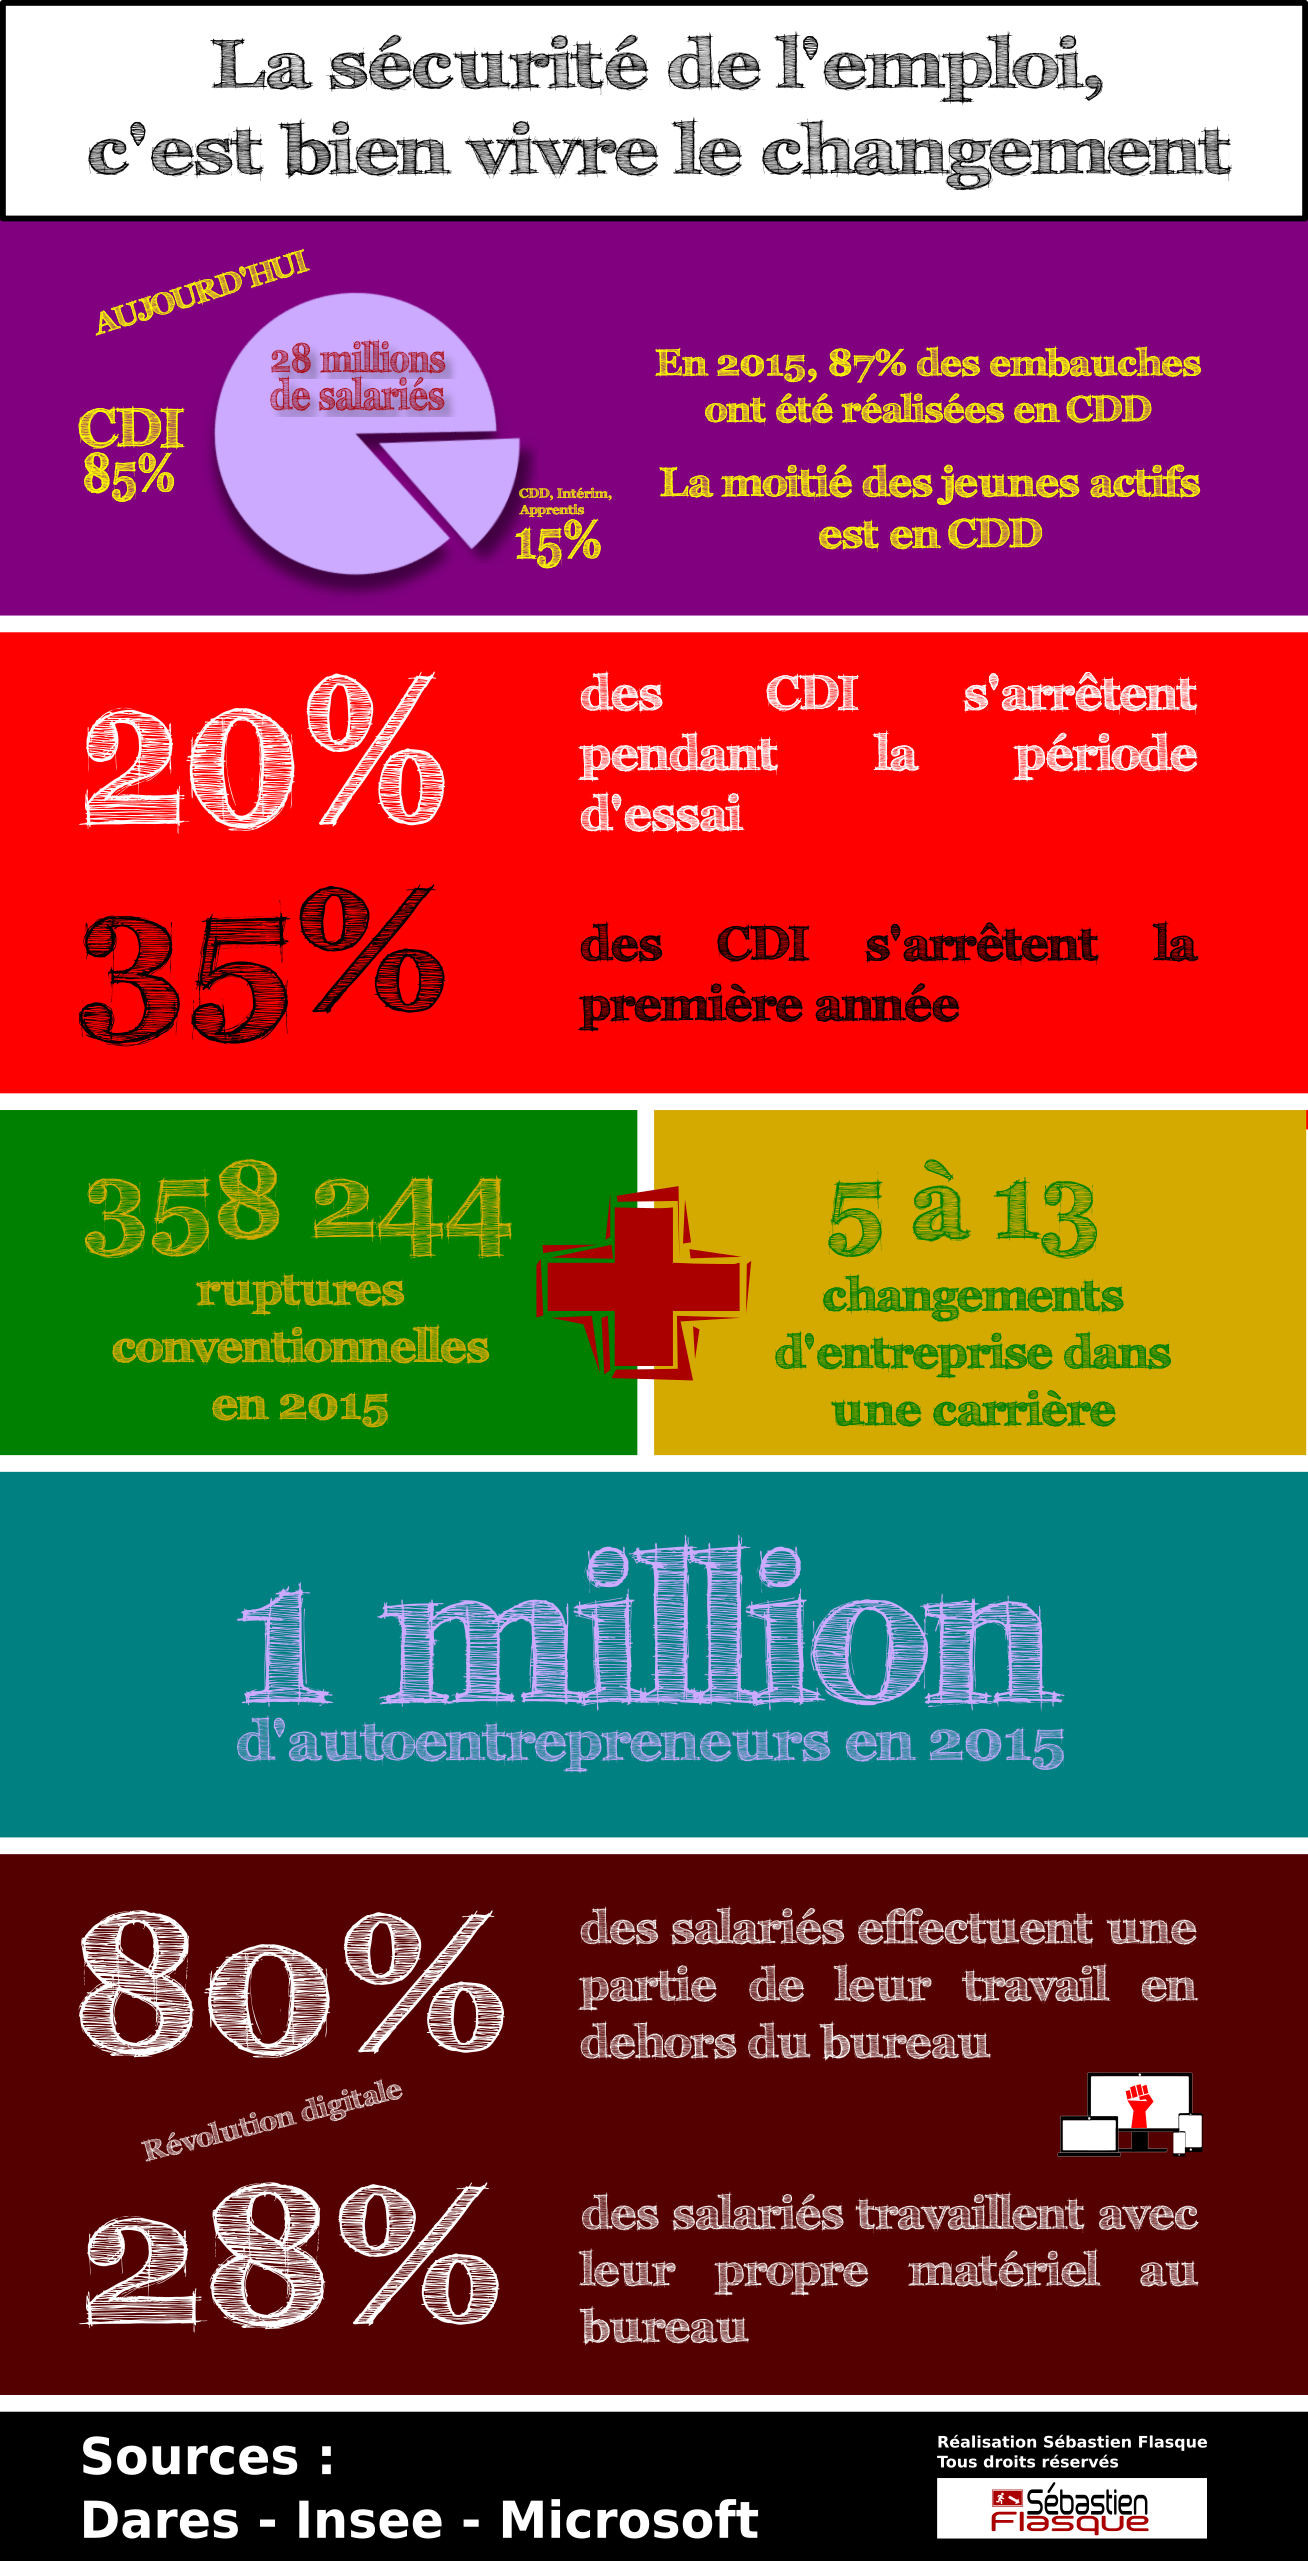 #infographies #infography #marchedutravail #digitalisation